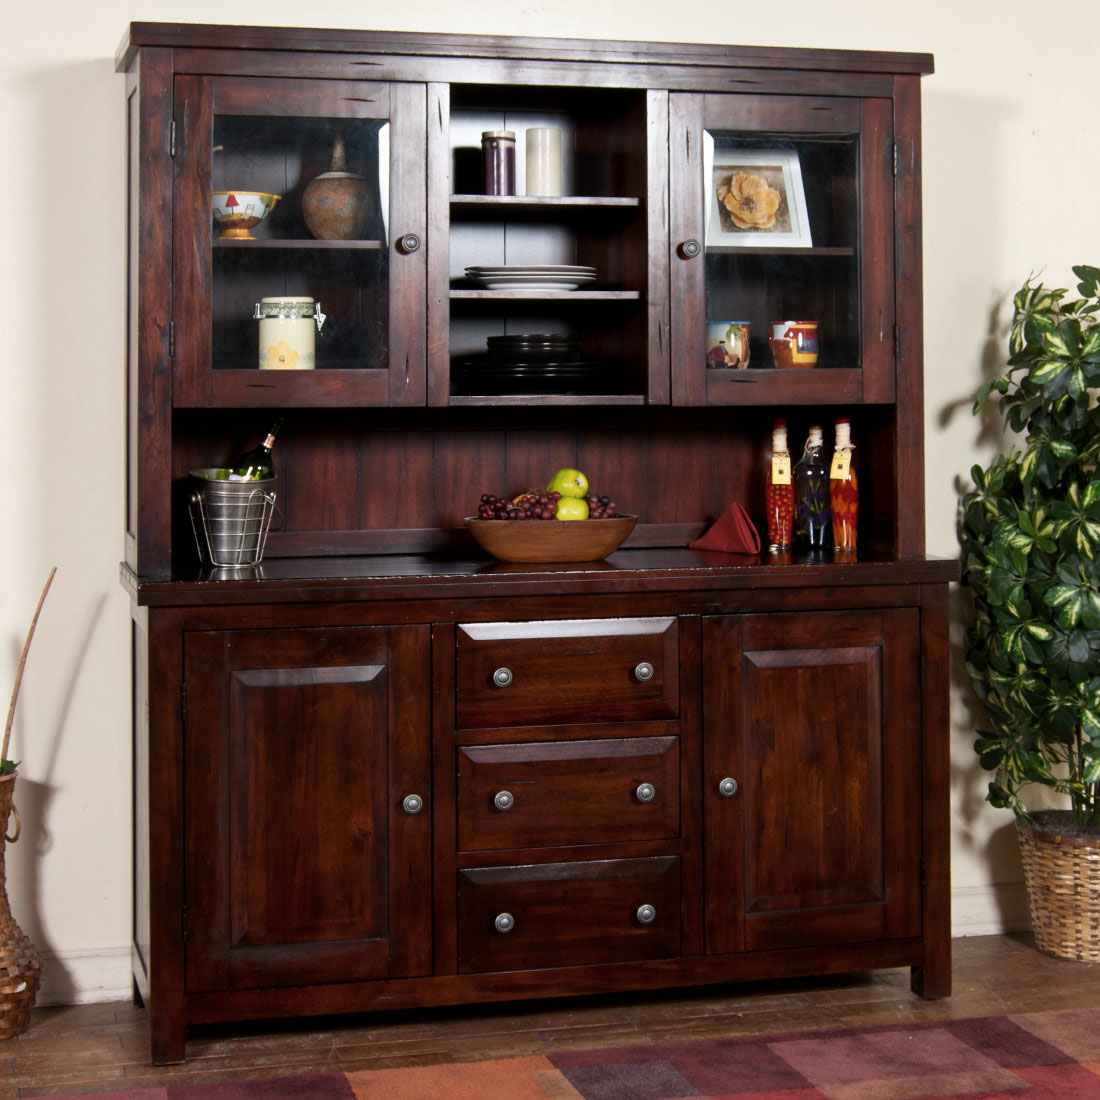 Image of: china cabinets and hutches style